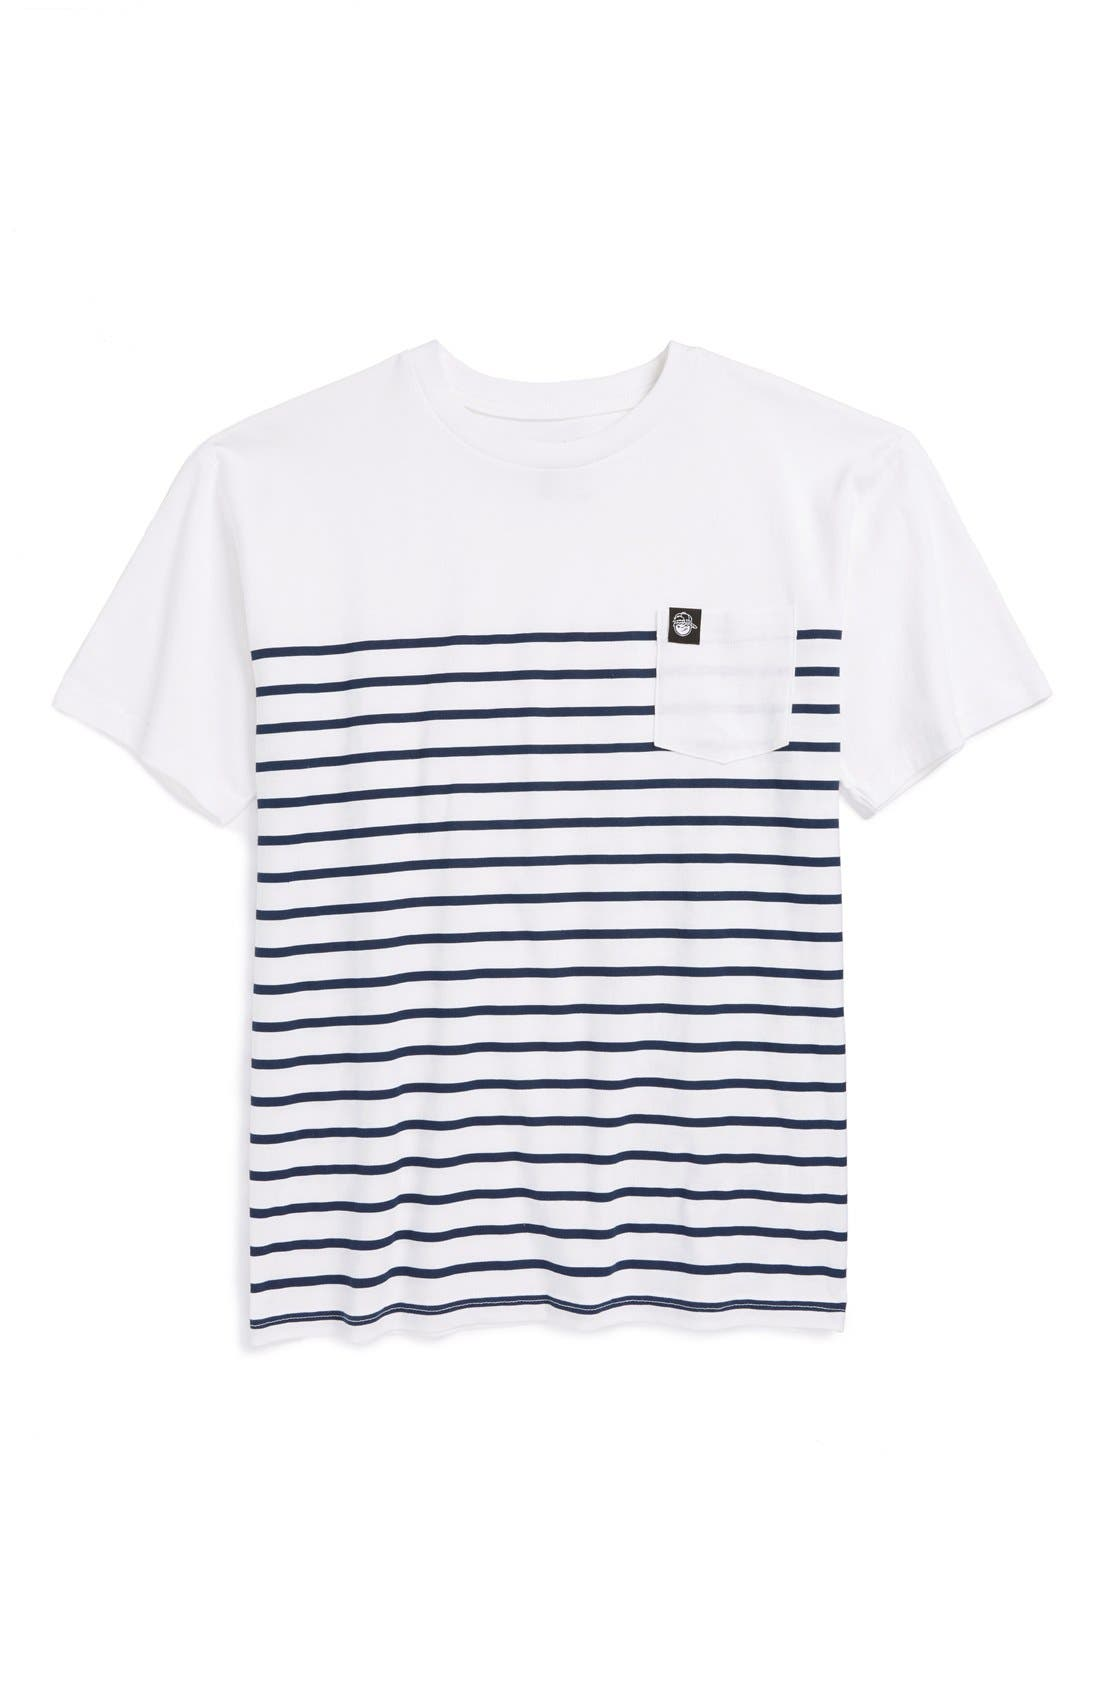 Main Image - Neff Stripe Crewneck Cotton T-Shirt (Big Boys)